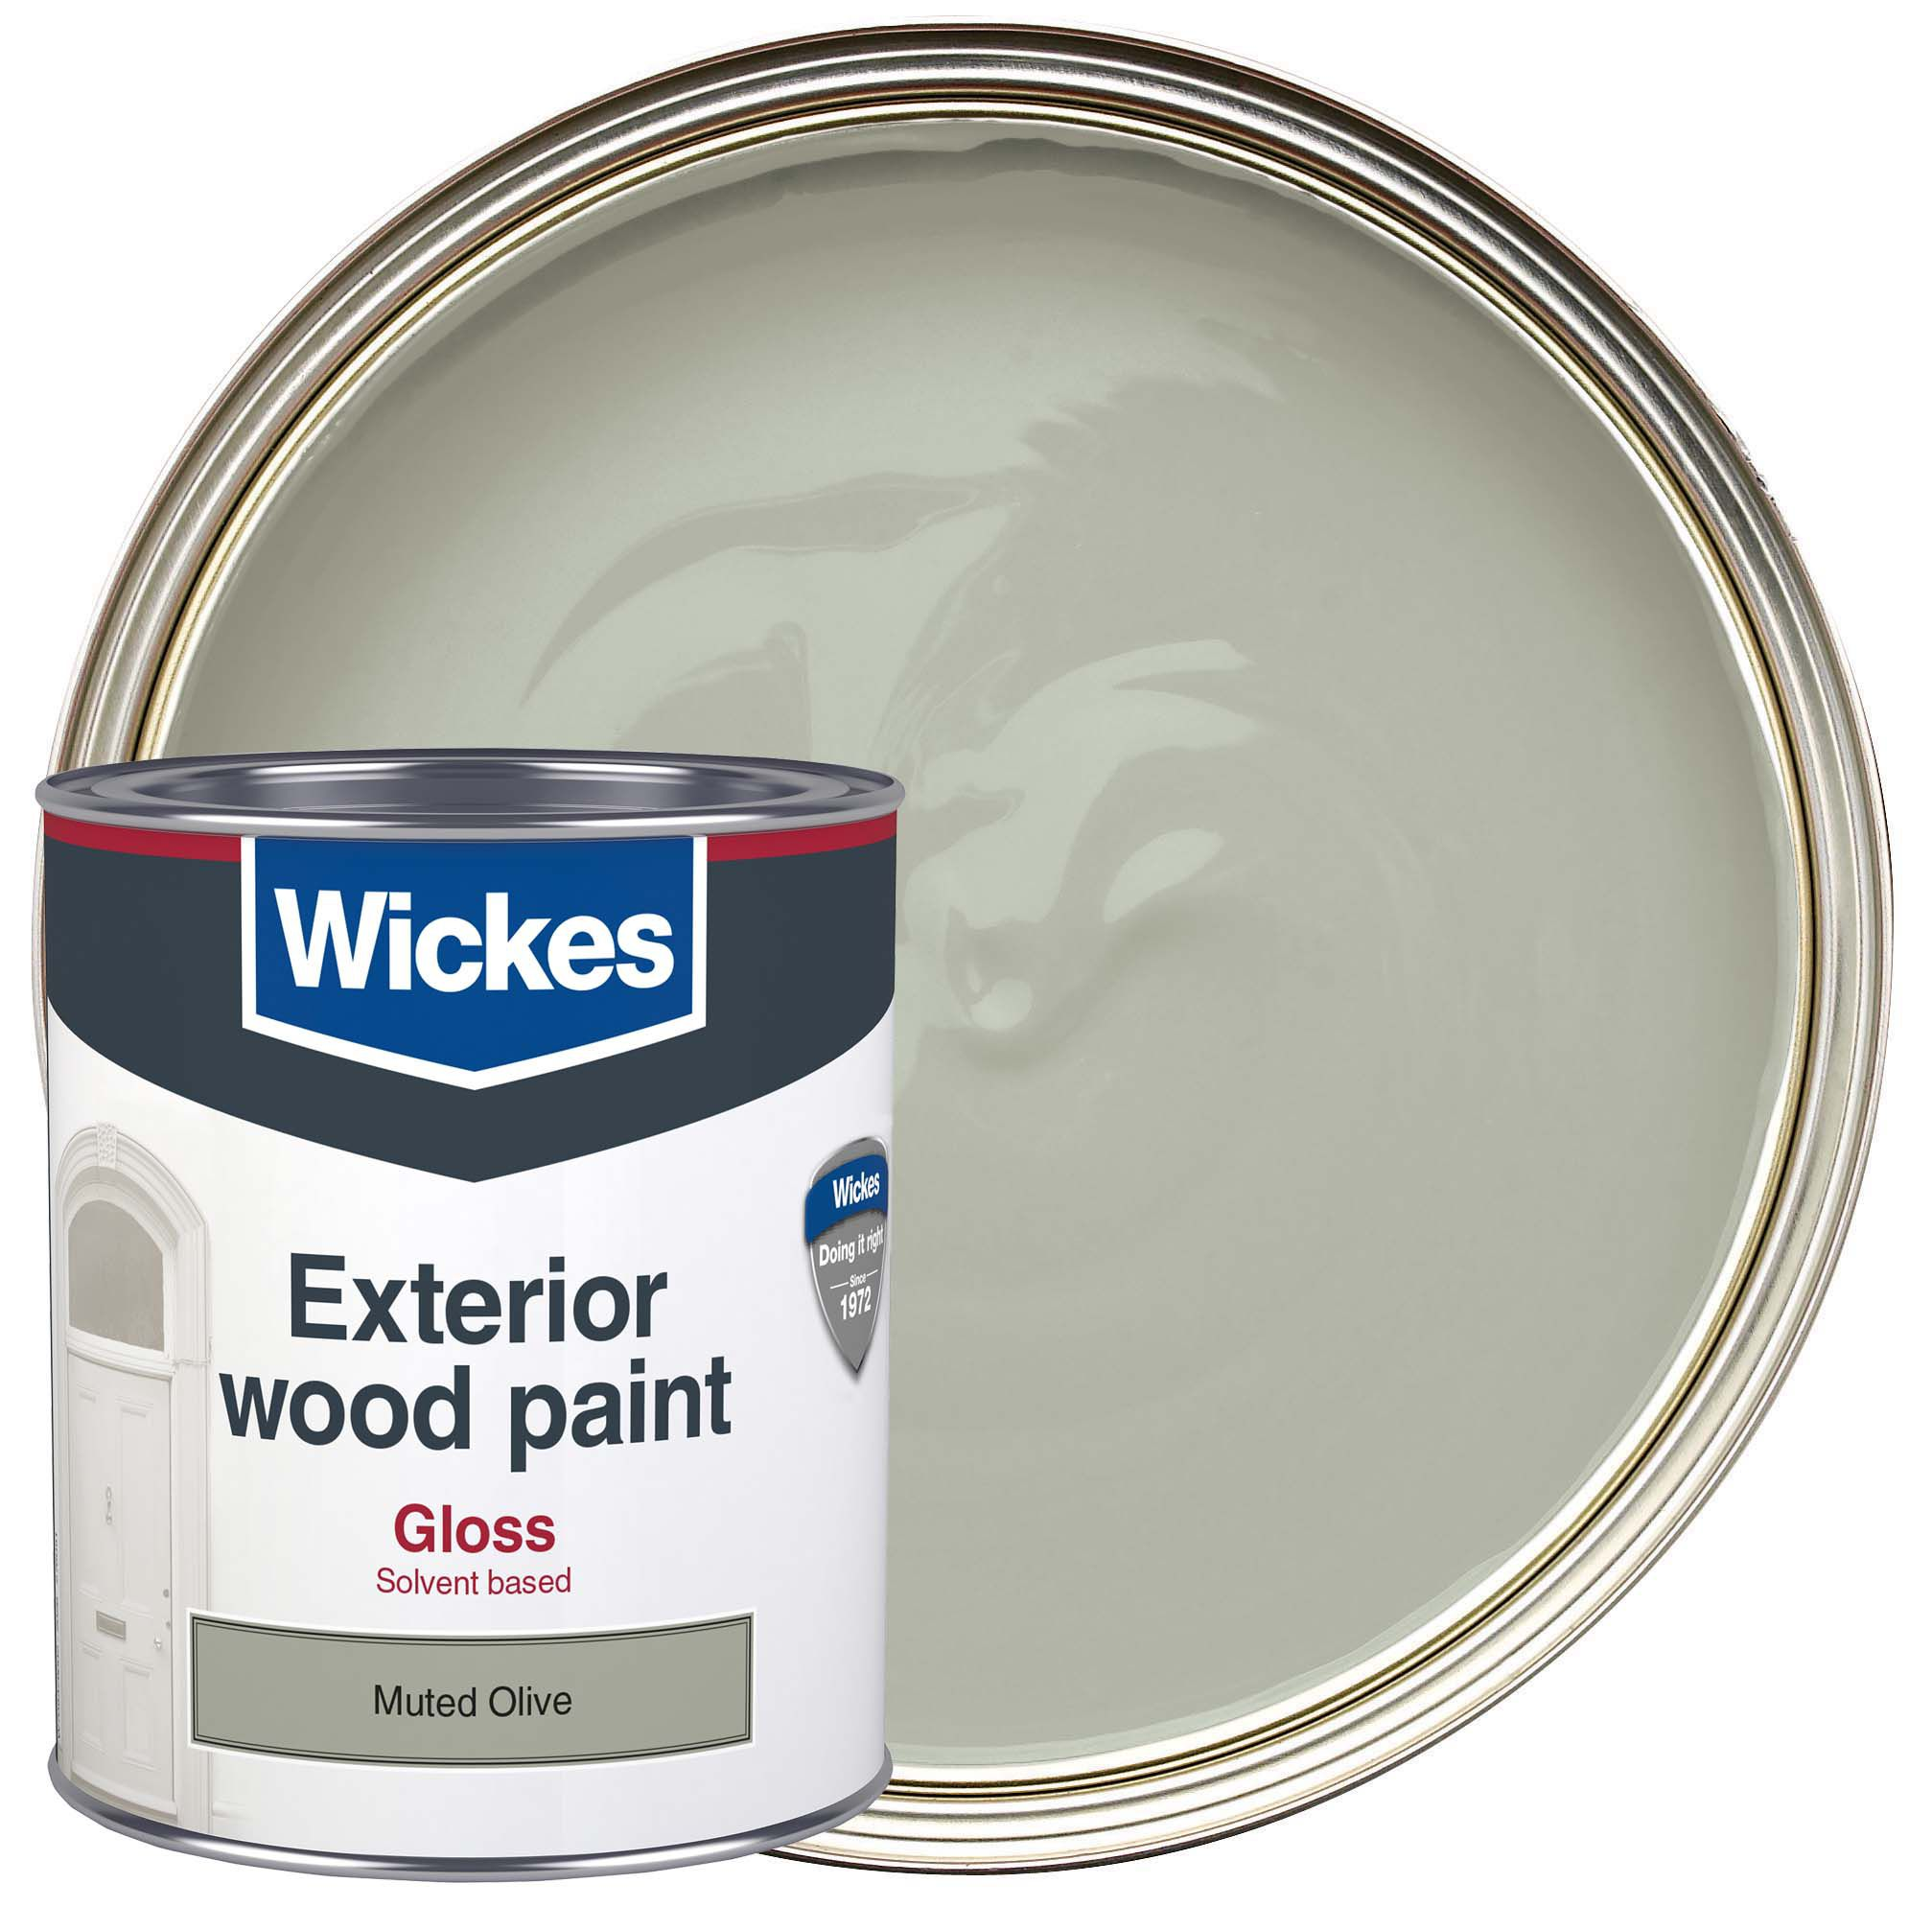 Wickes Exterior Gloss Paint   Muted Olive 750ml | Wickes.co.uk